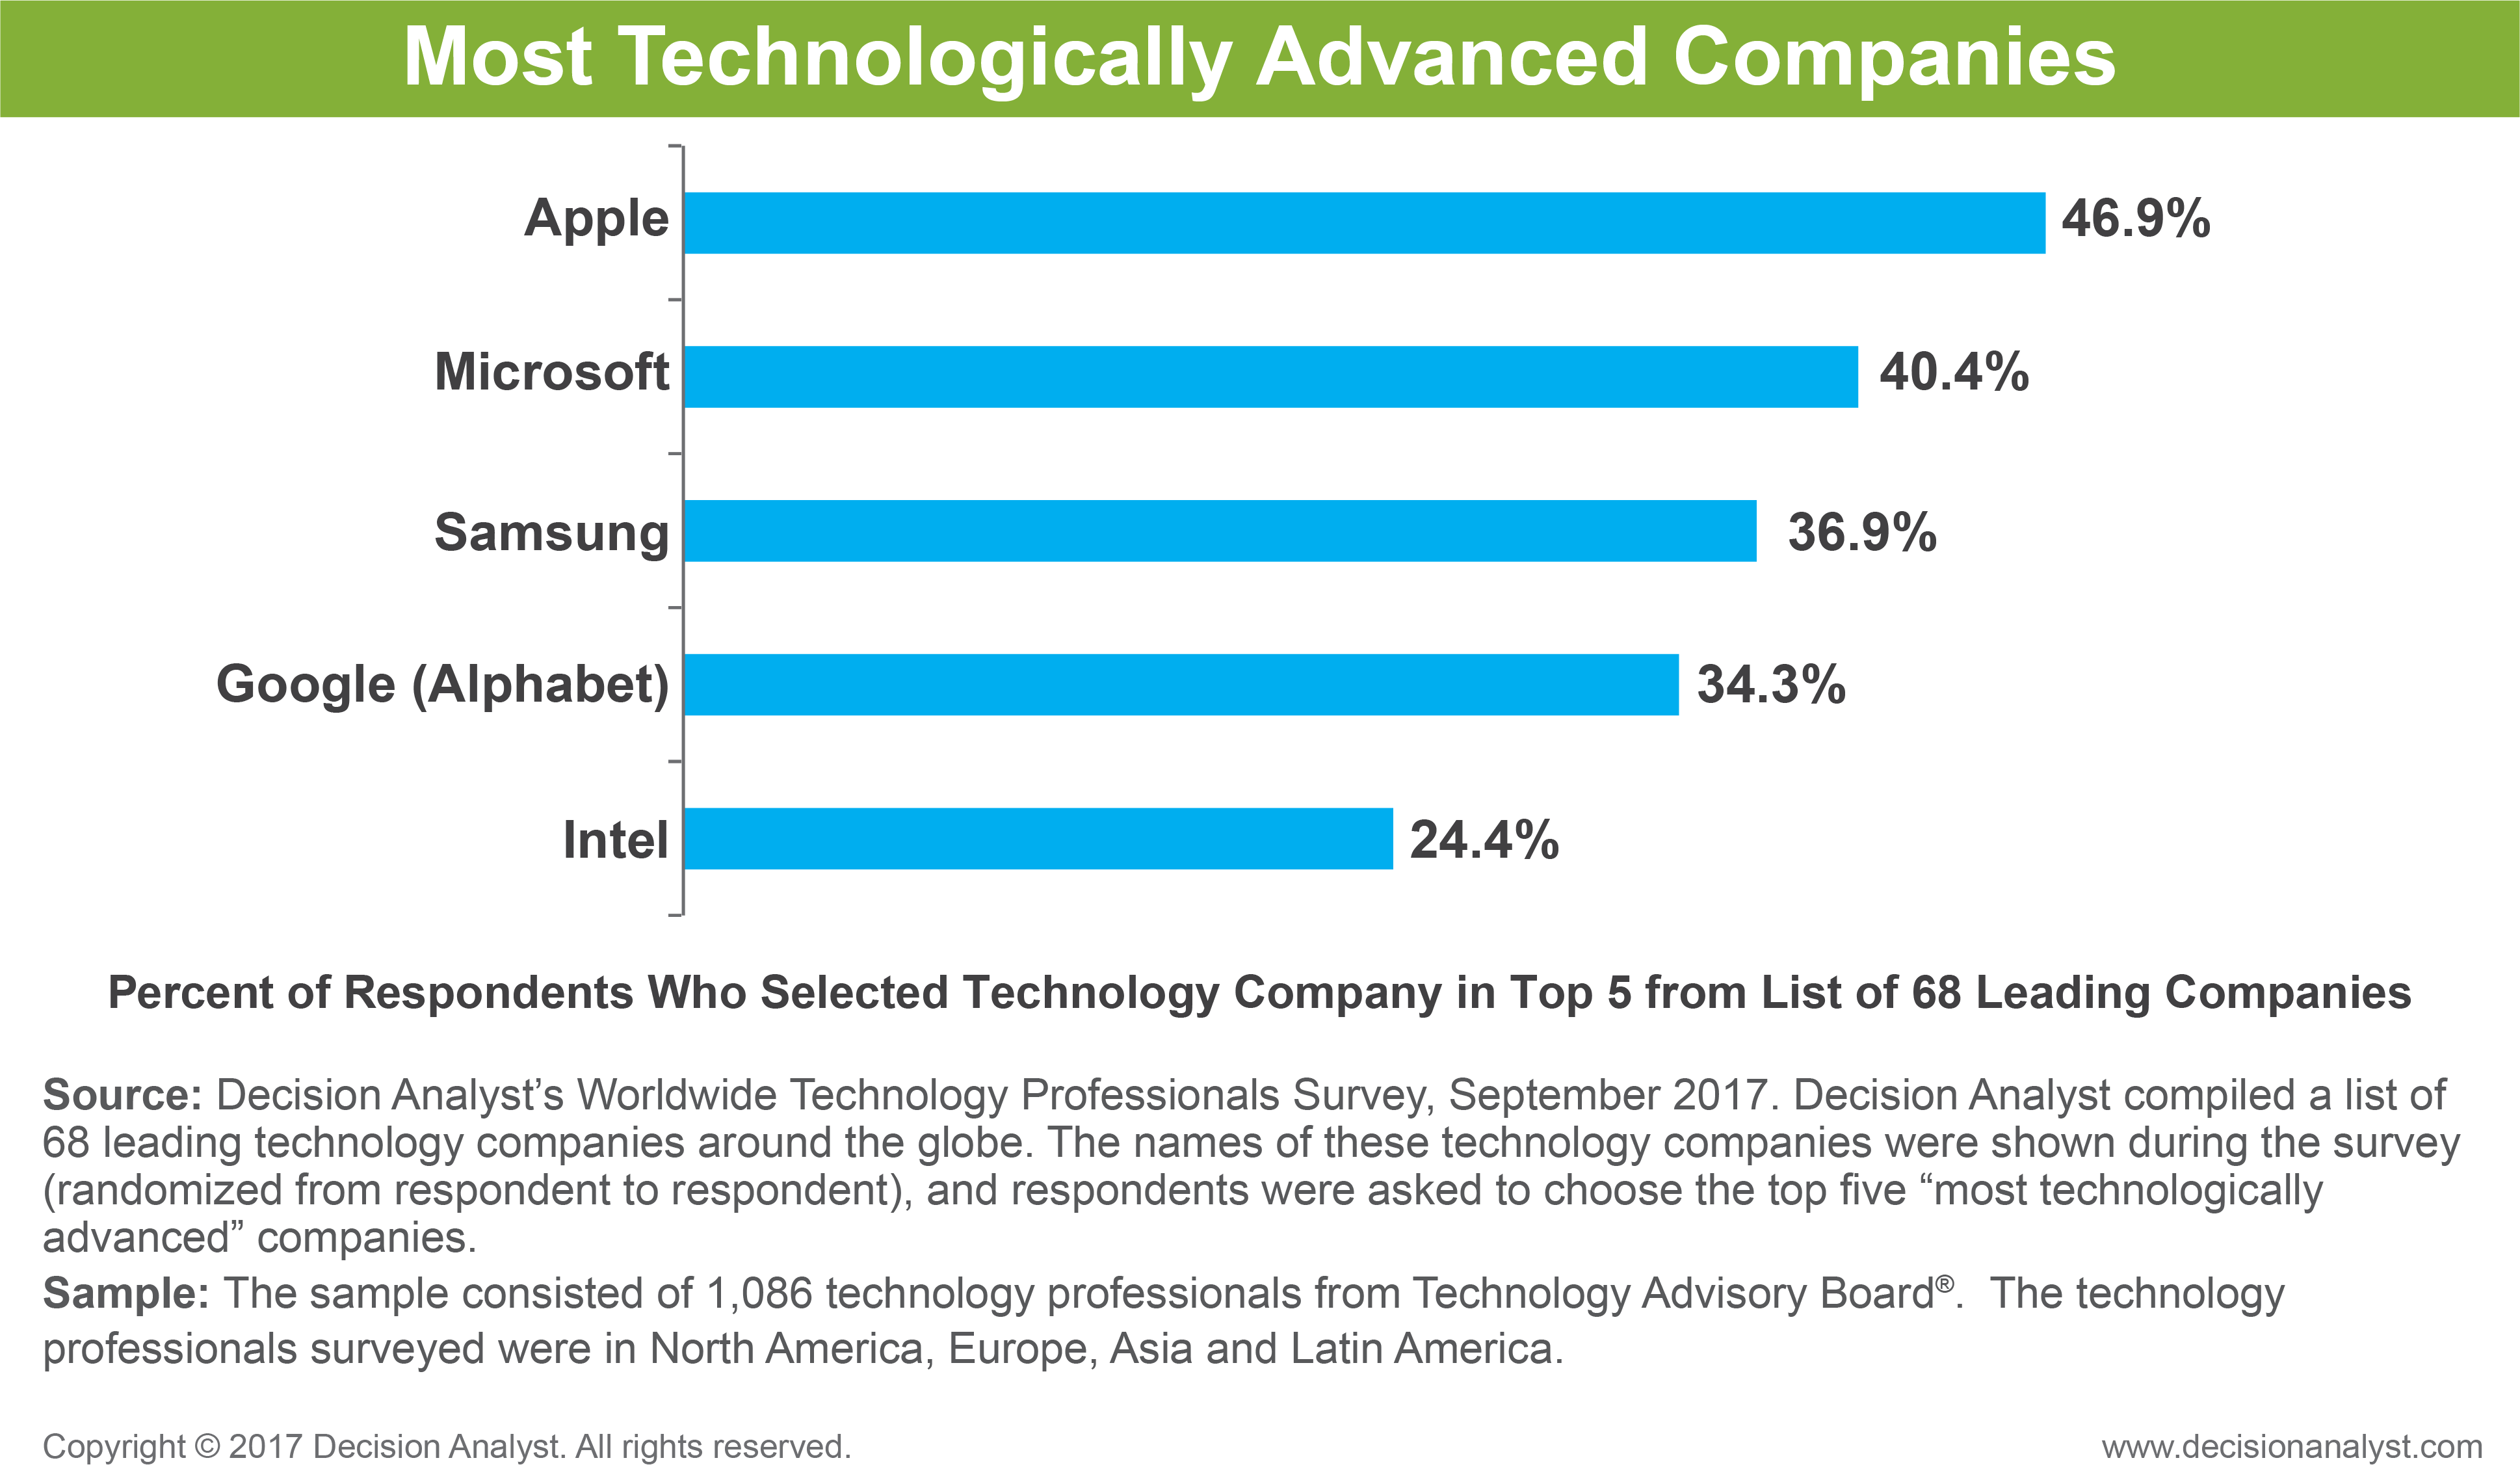 Most Technologically Advanced Companies